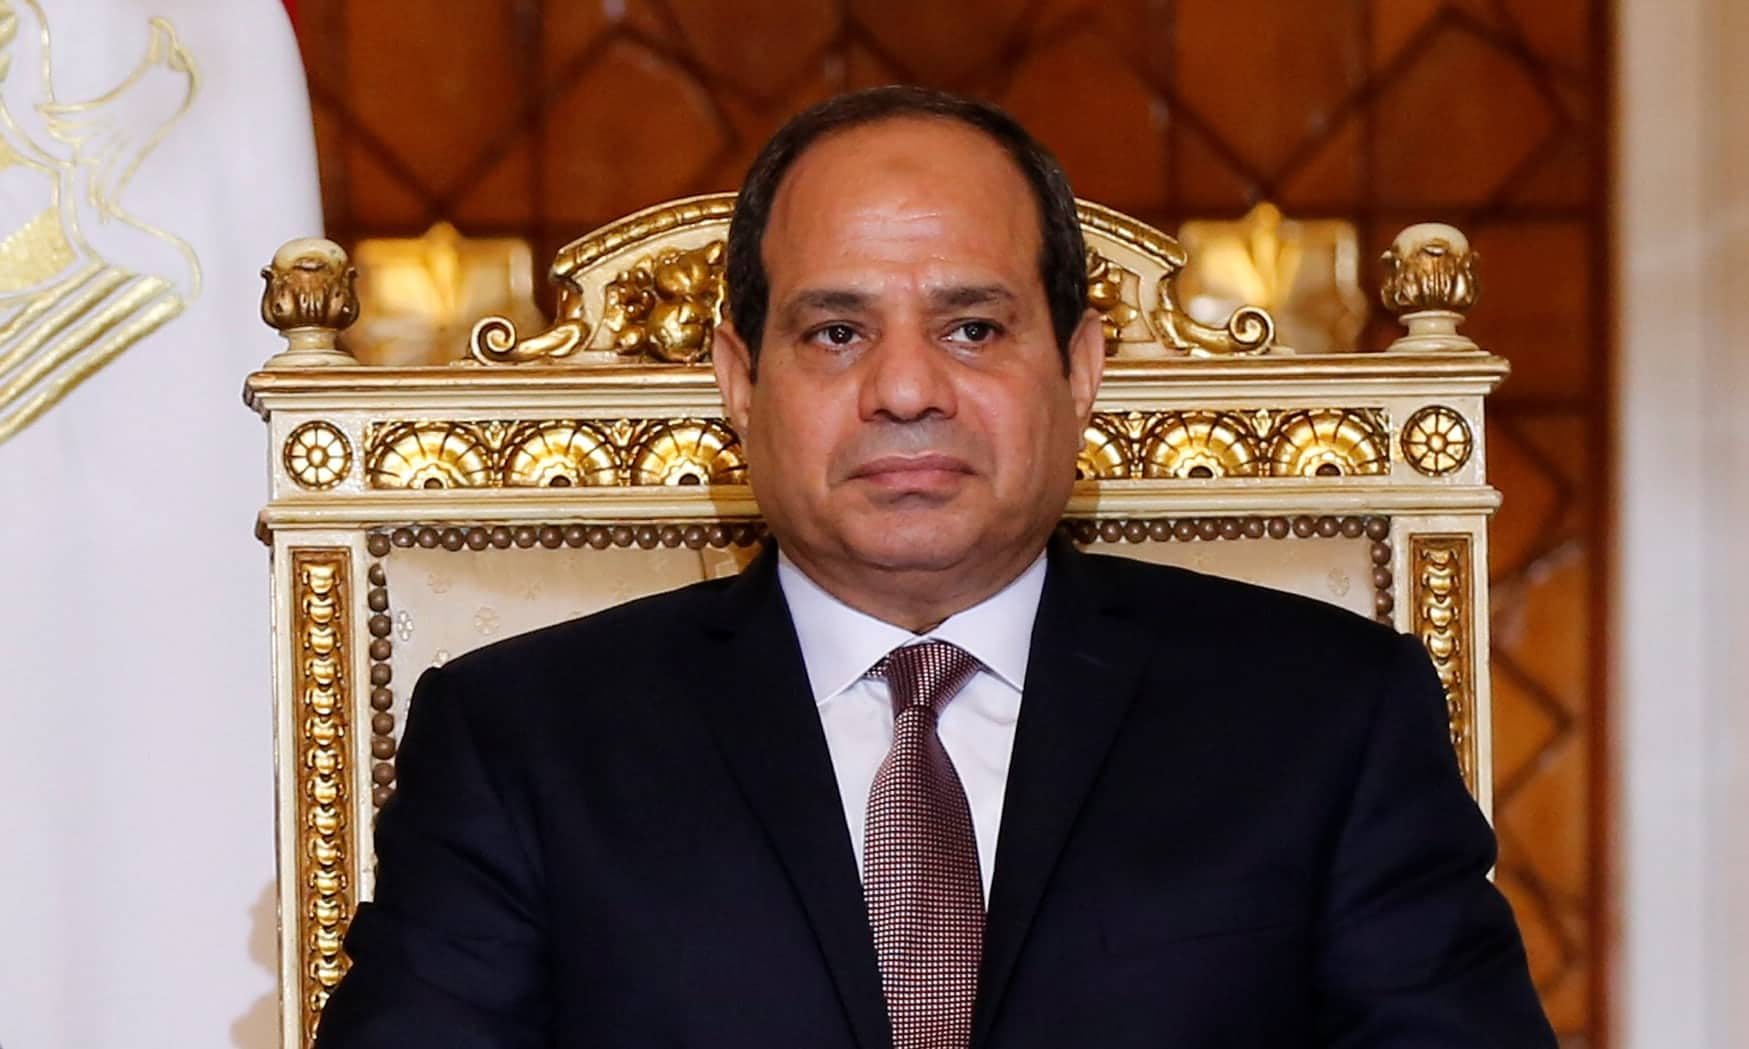 Sisi's Efforts to Remain in Power, Sisi's Efforts to Remain in Power